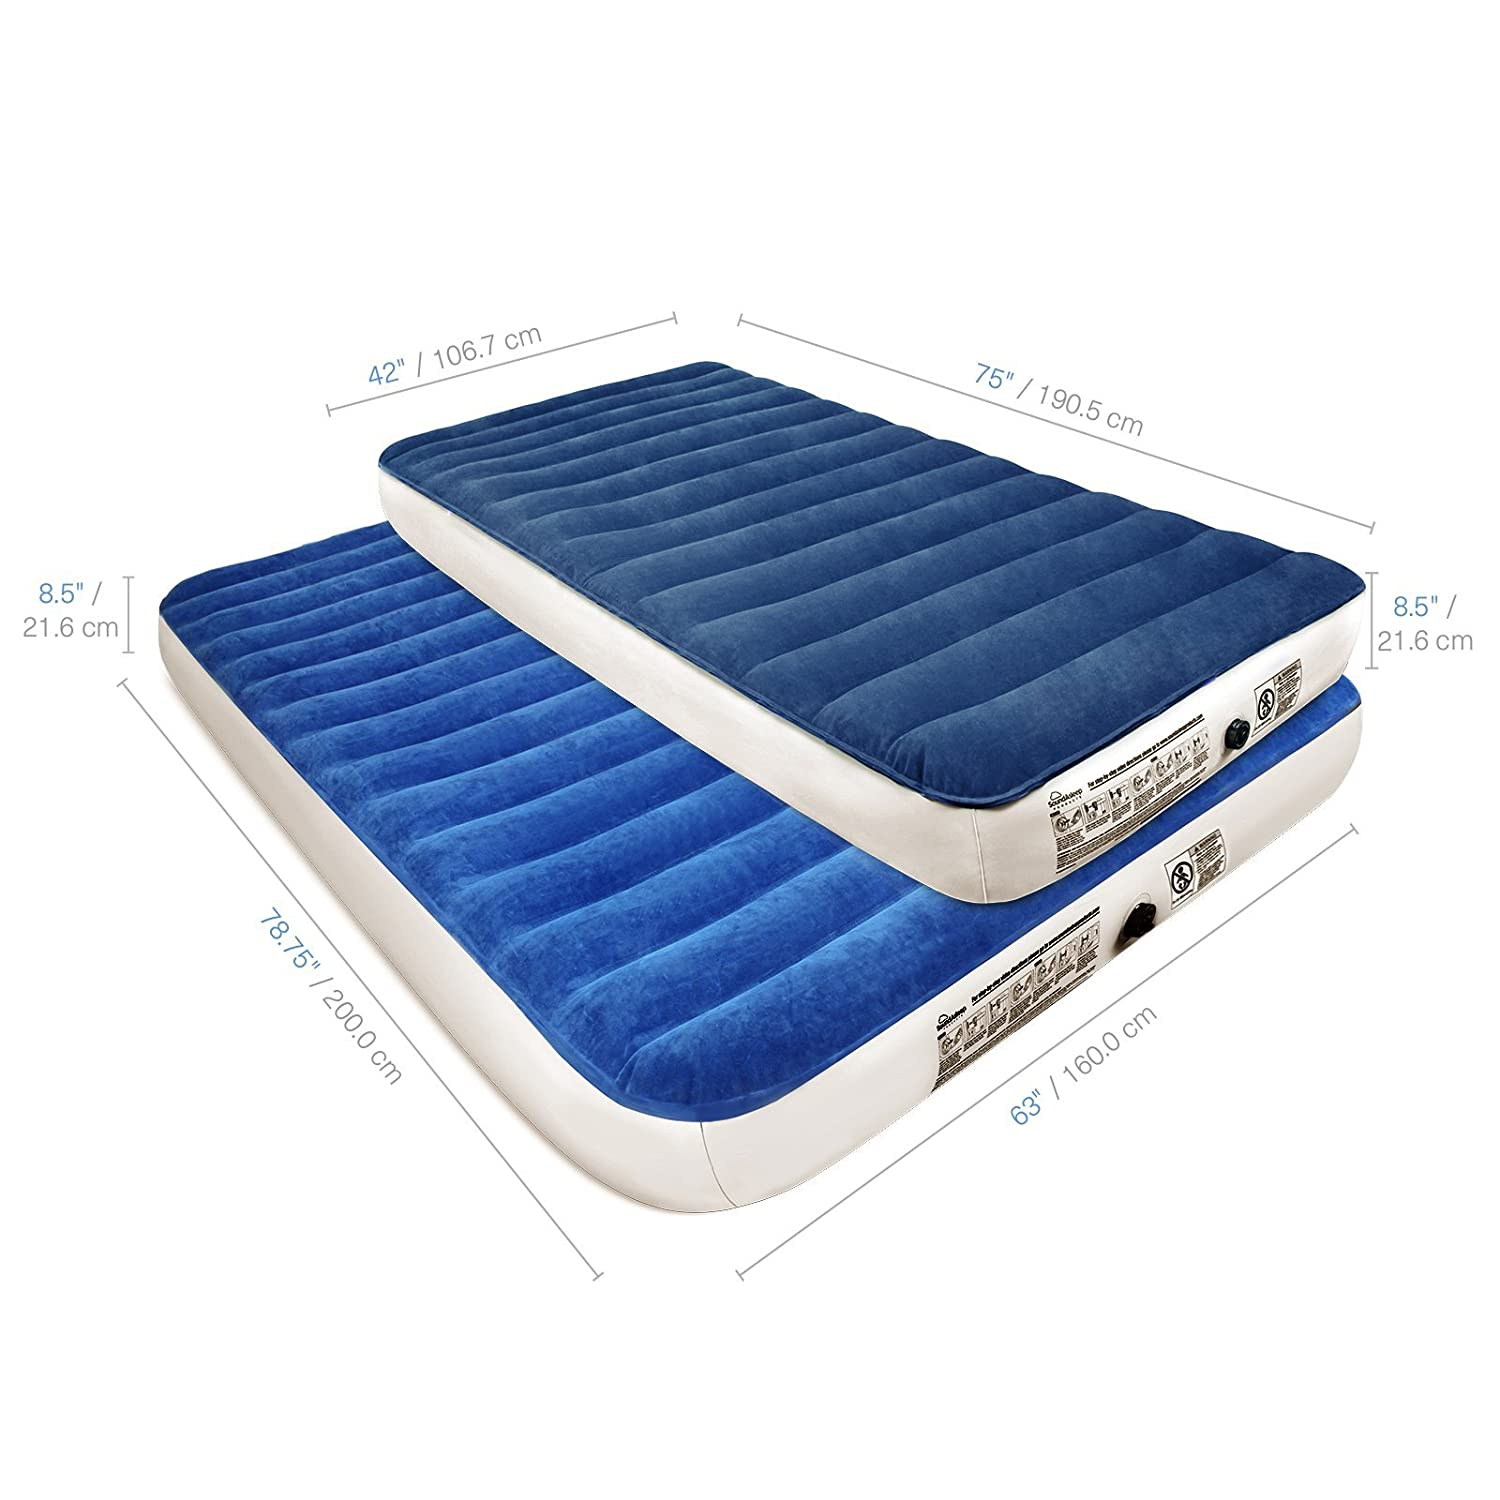 SoundAsleep Camping Series Air Mattress